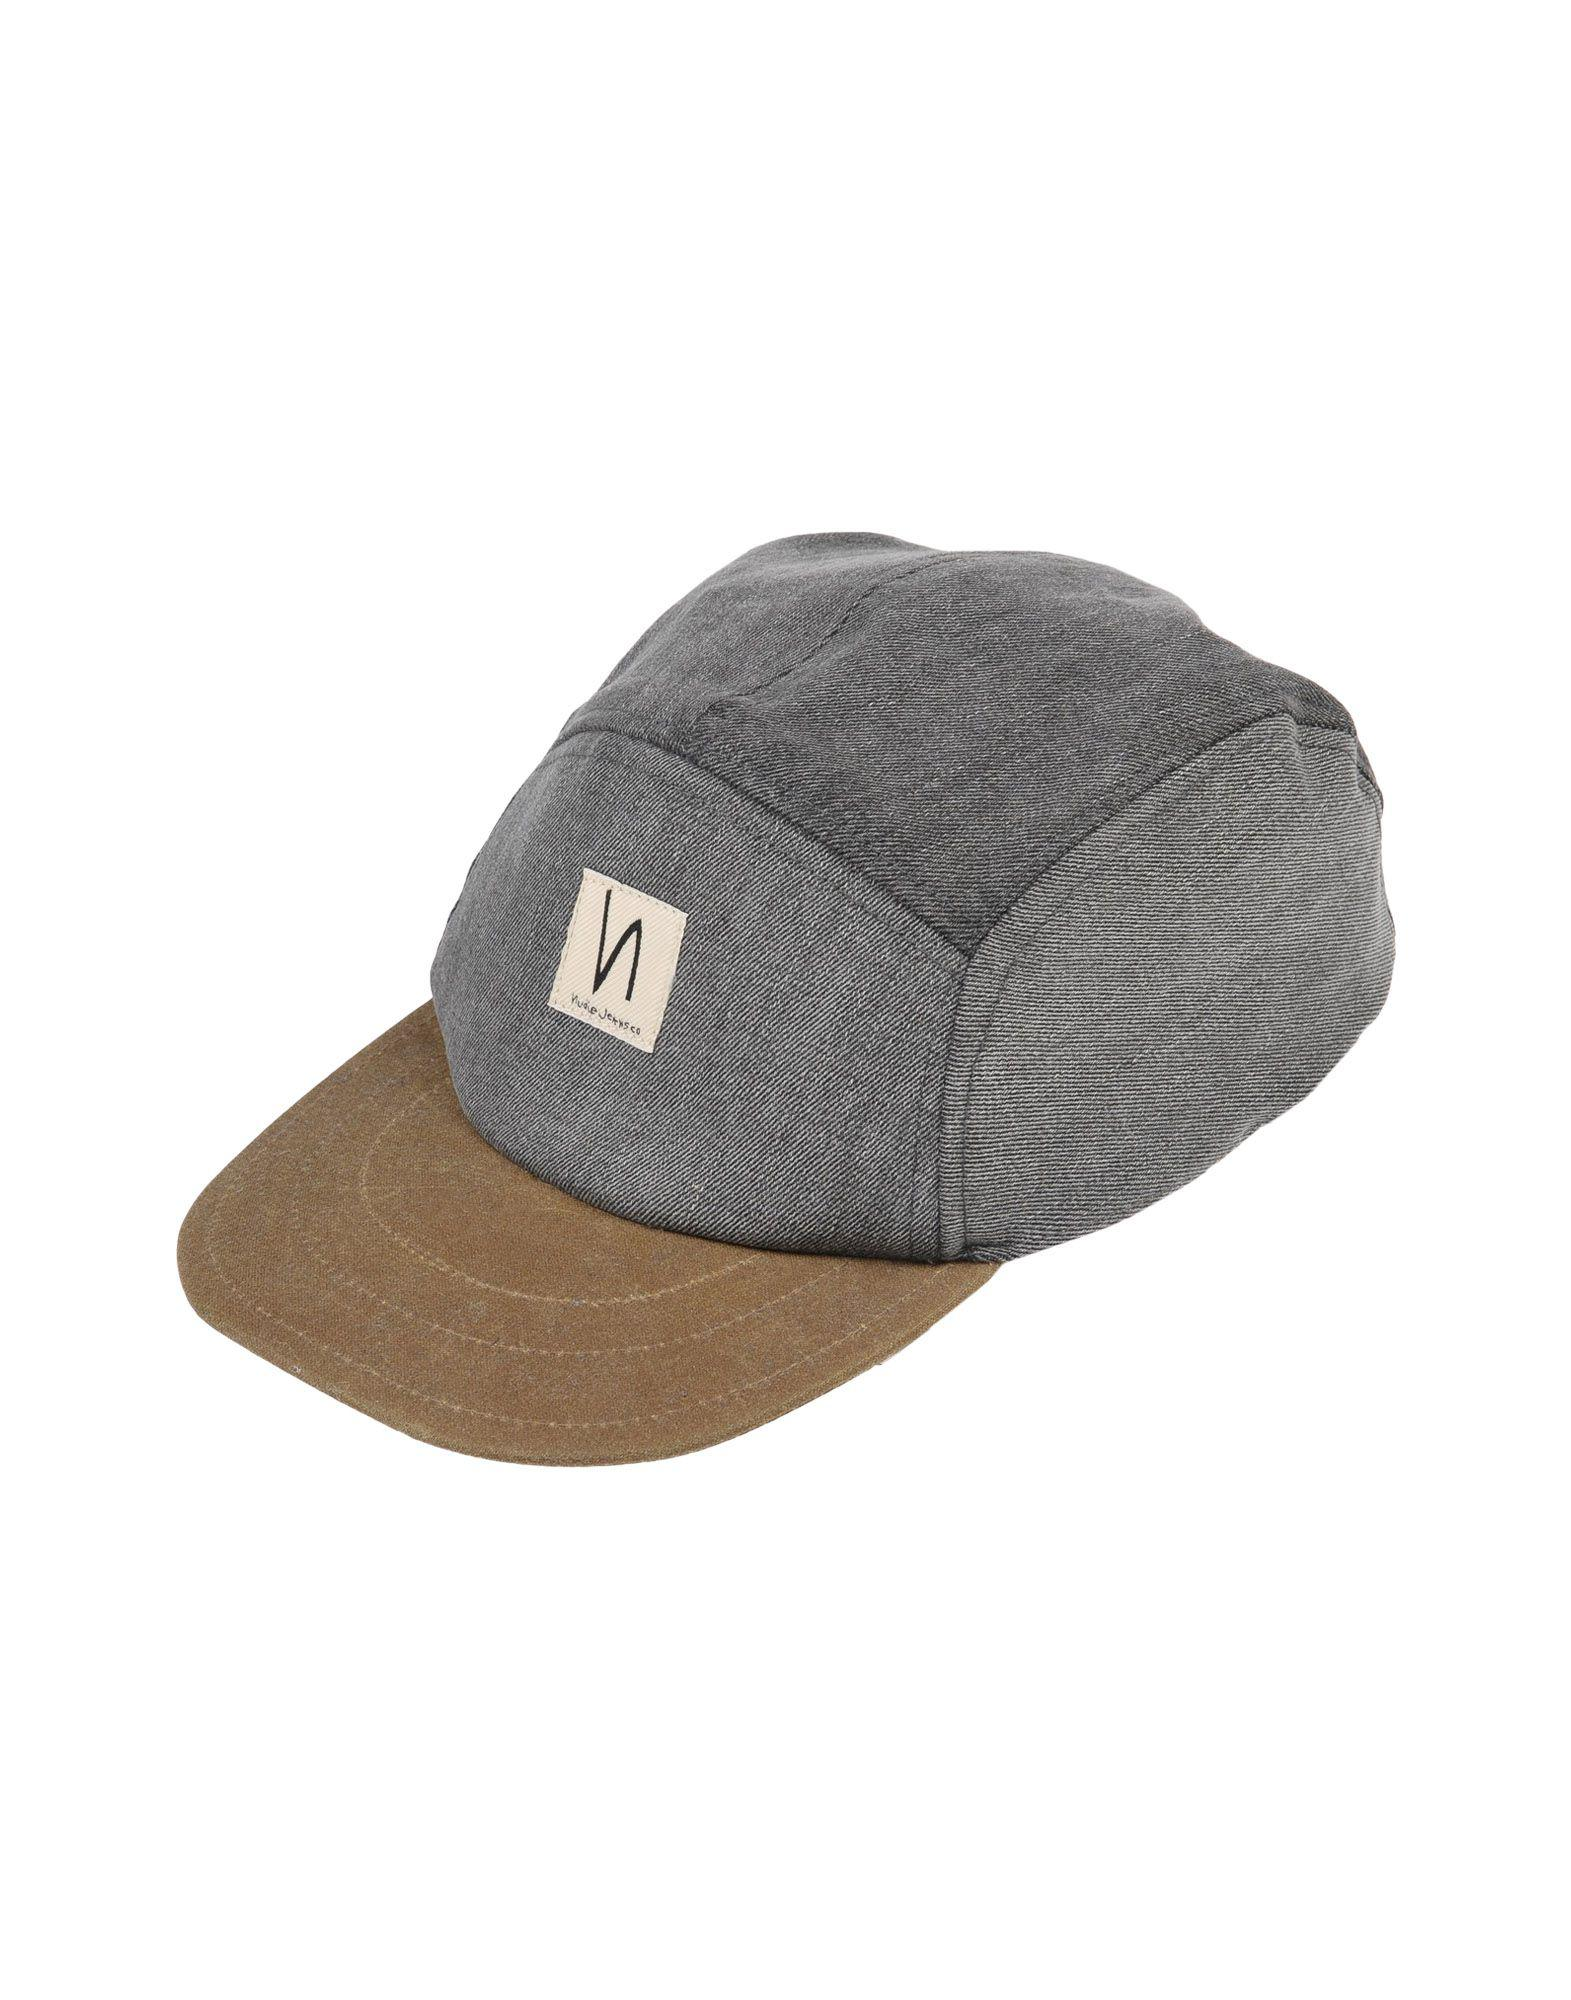 Lyst - Nudie Jeans Hat in Black for Men 37fc80993f2